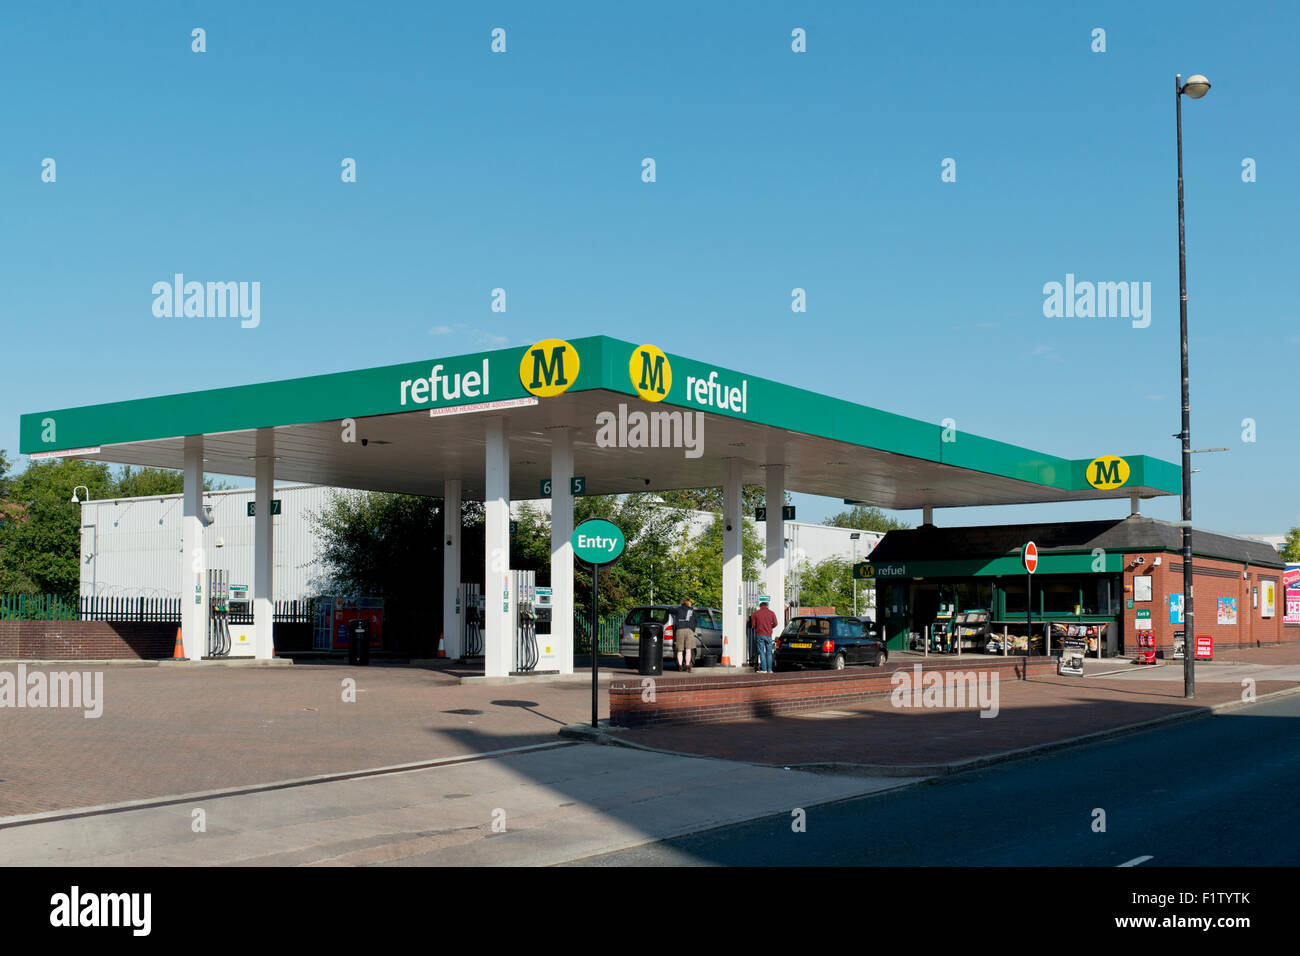 A Morrisons Refuel petrol filling station in Salford shot against a blue sky (Editorial use only). - Stock Image